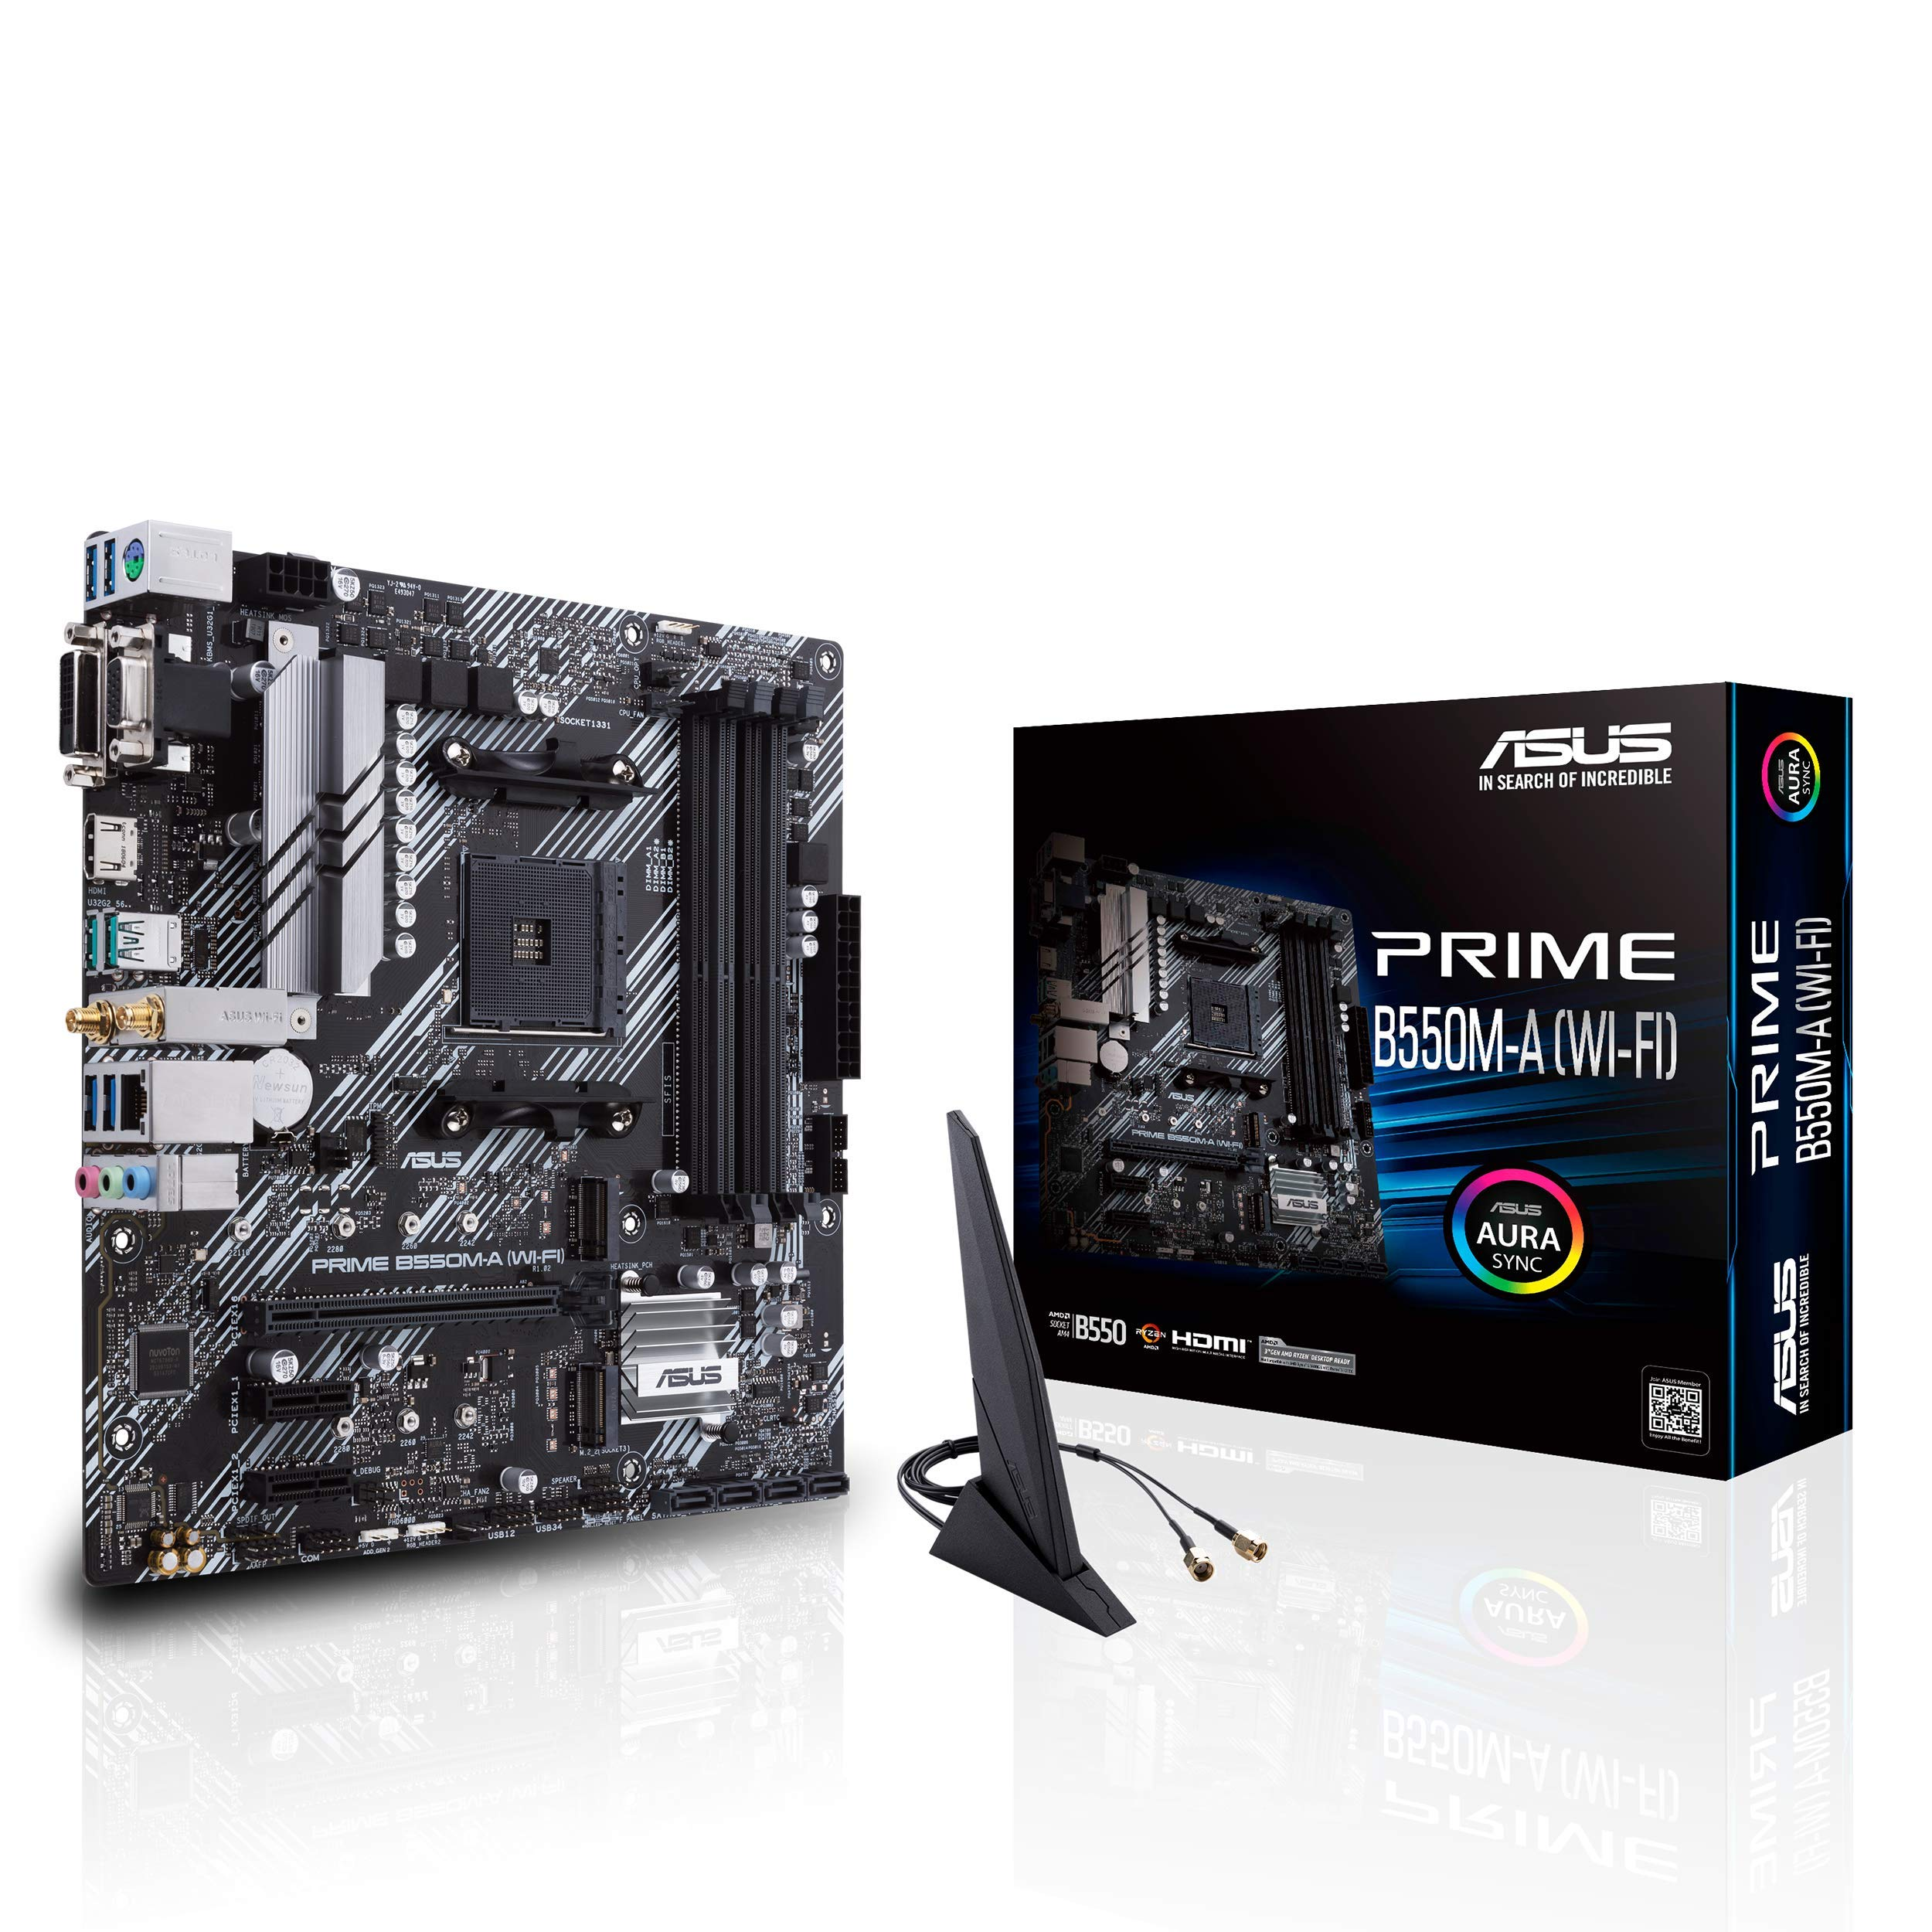 Motherboard ASUS PRIME B550M-A (WI-FI) Socket AM4